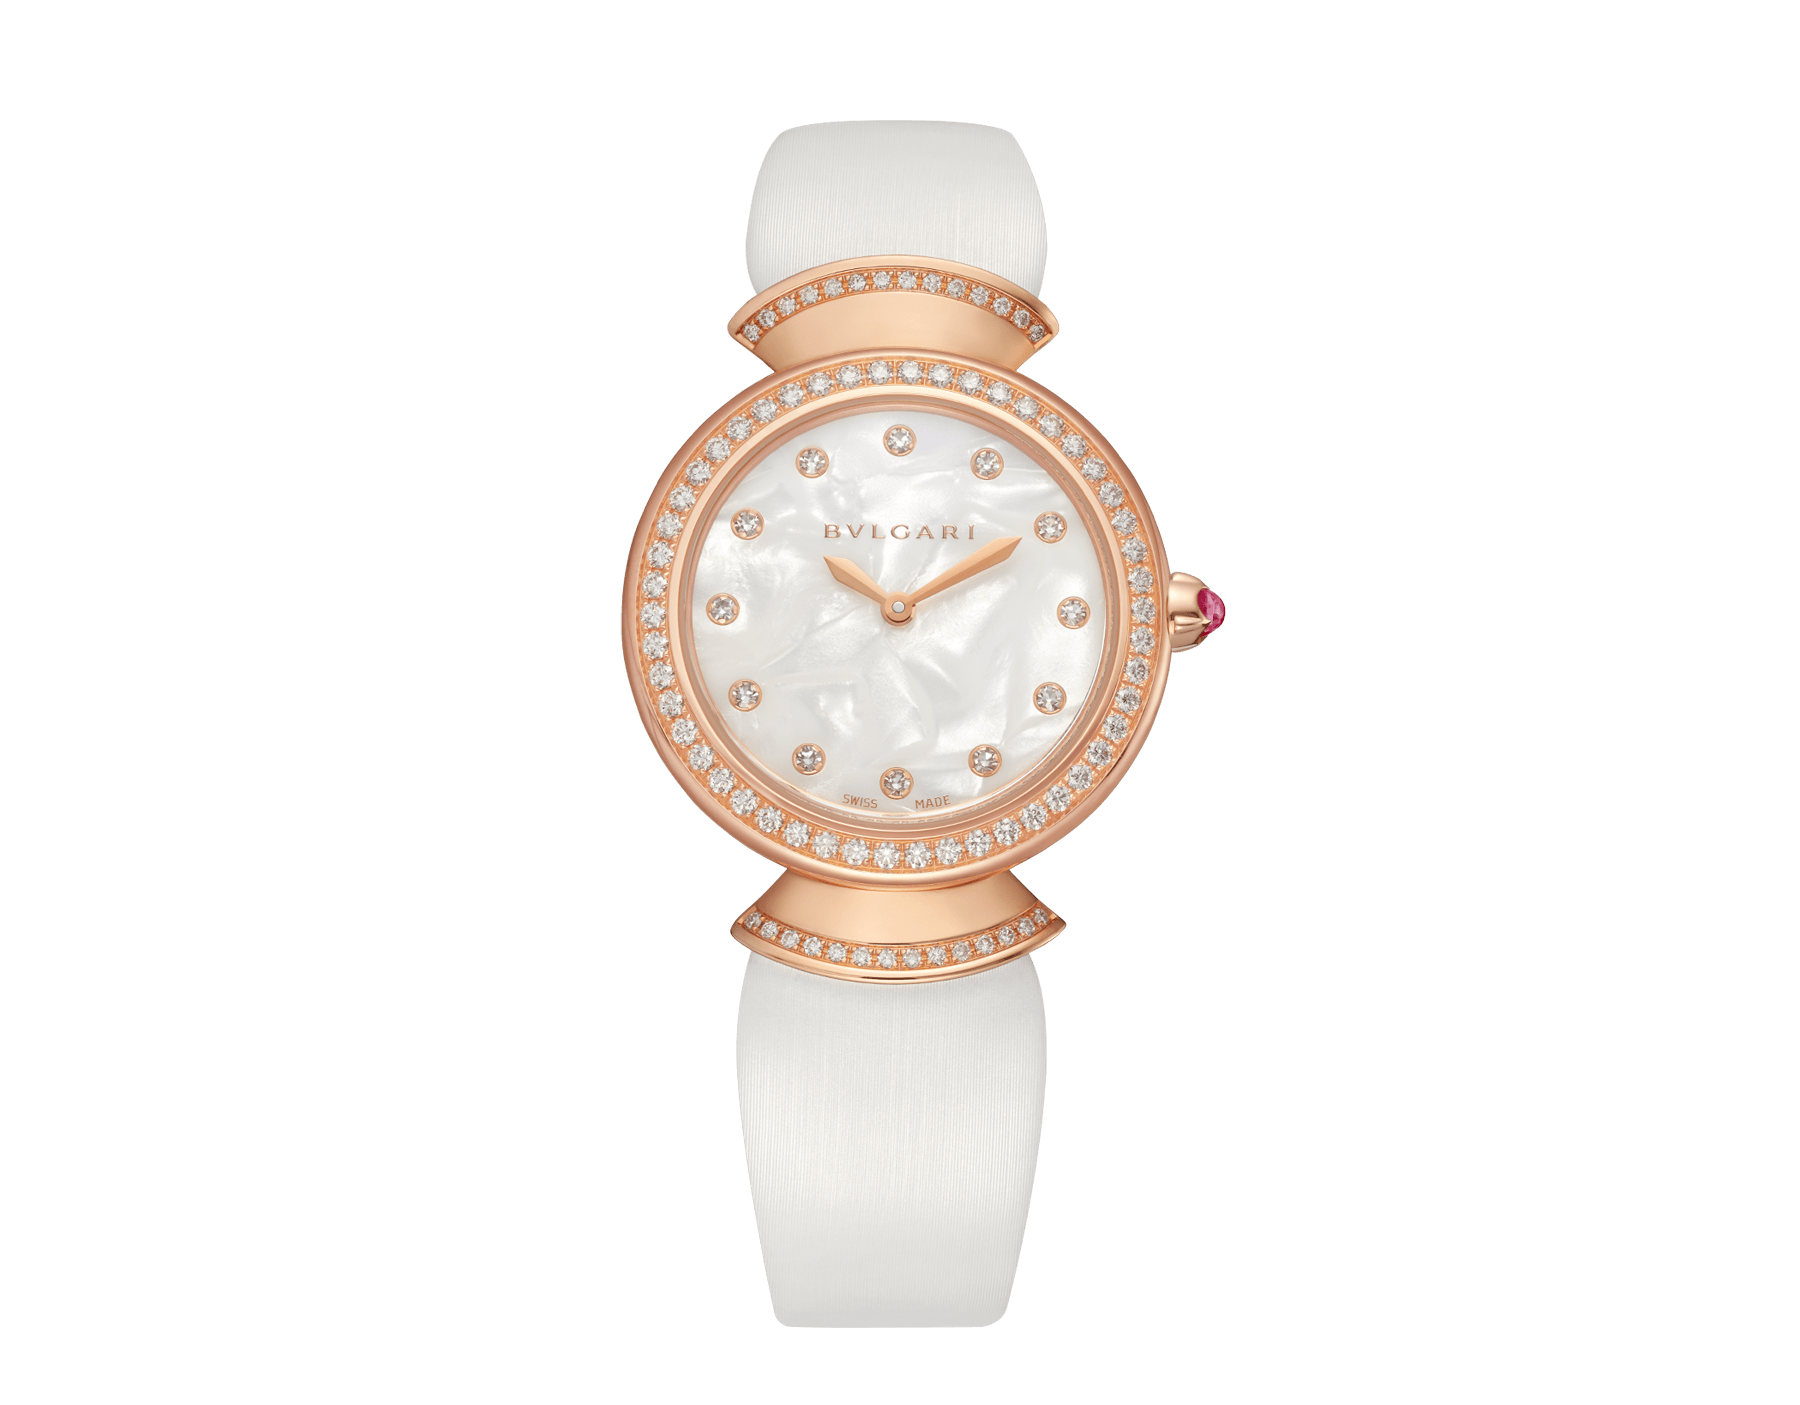 Montre DIVAS' DREAM avec boîtier en or rose 18 K serti de diamants taille brillant, cadran en acétate naturel, index sertis de diamants et bracelet en satin blanc 102433 image 1